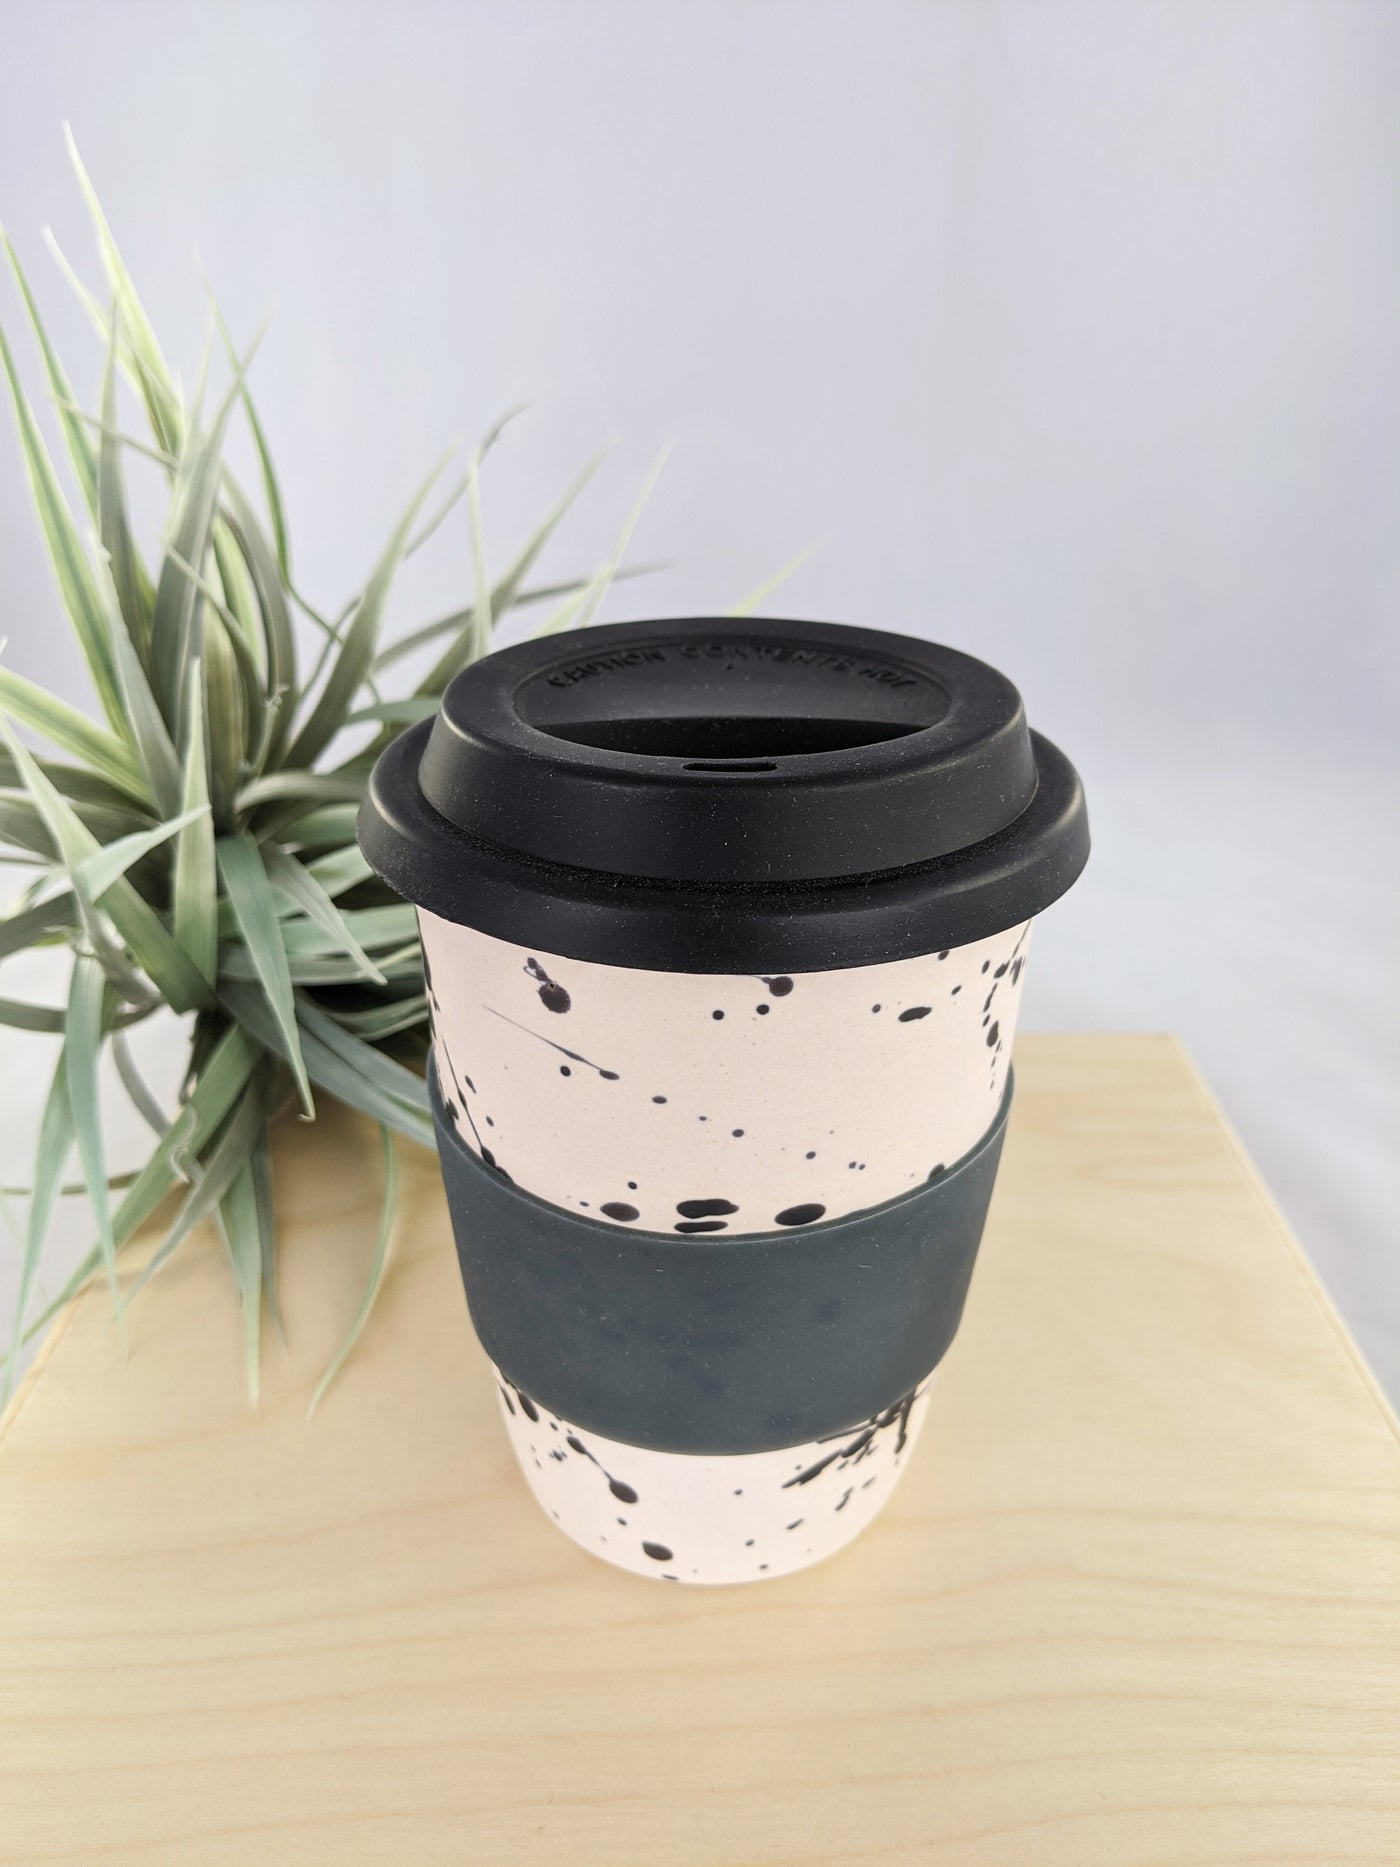 Pink and black speckled 16 oz to-go mug by Meg Hubert available at Local Assembly